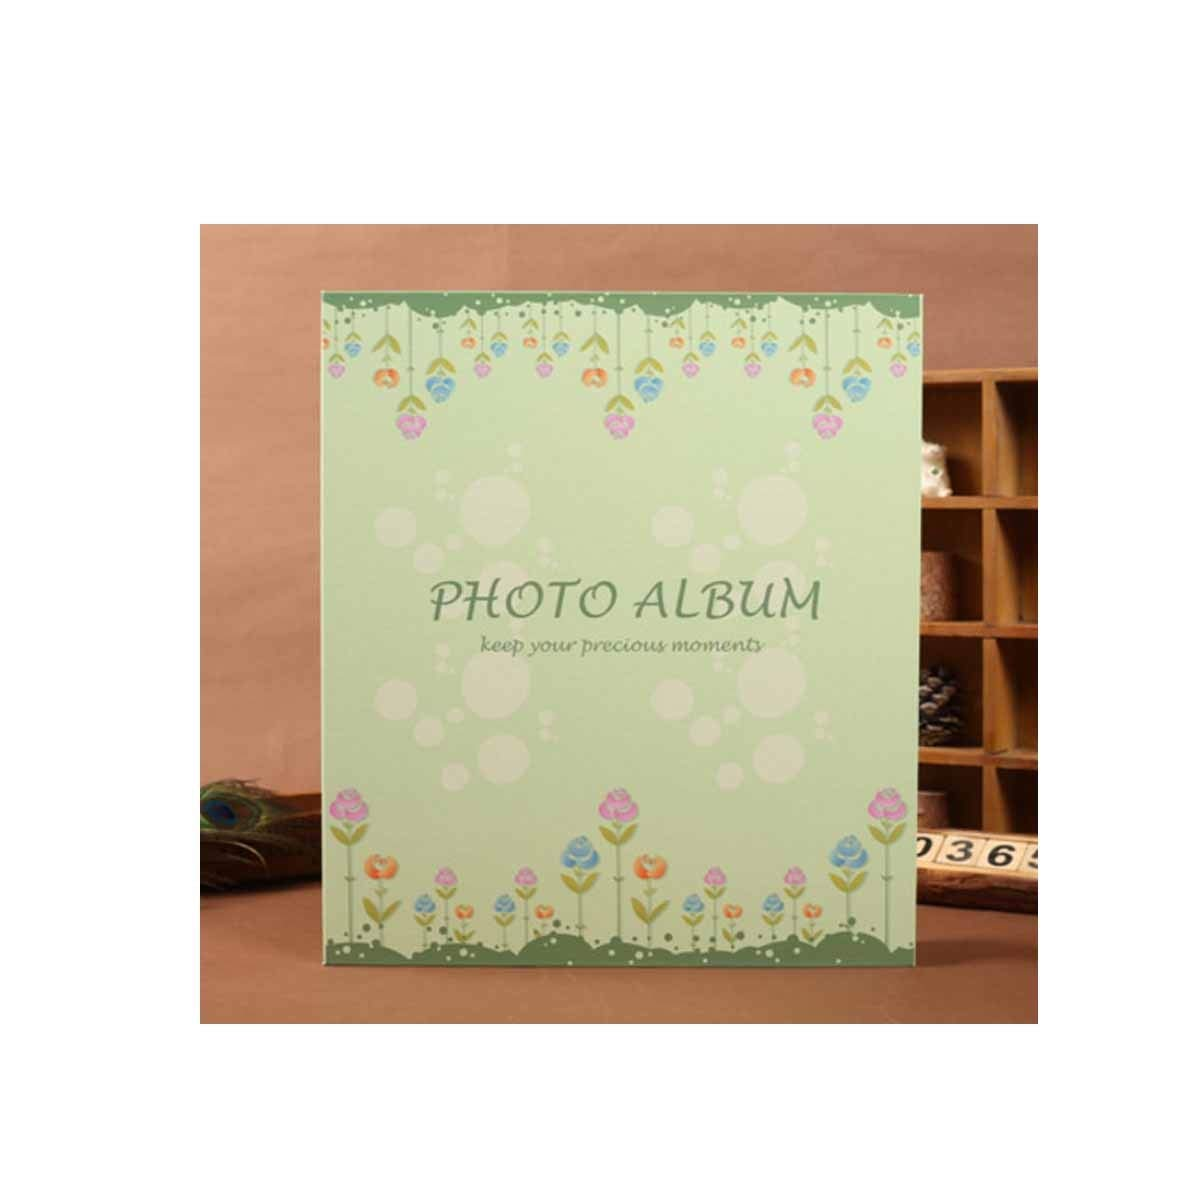 Kaiyitong Photo Album, Stylish and Cute Appearance Traditional Photo Album, Family Record Child Baby Growth Record Book, (can Accommodate 500 Photos, Green) Safety (Color : Green) by Kaiyitong